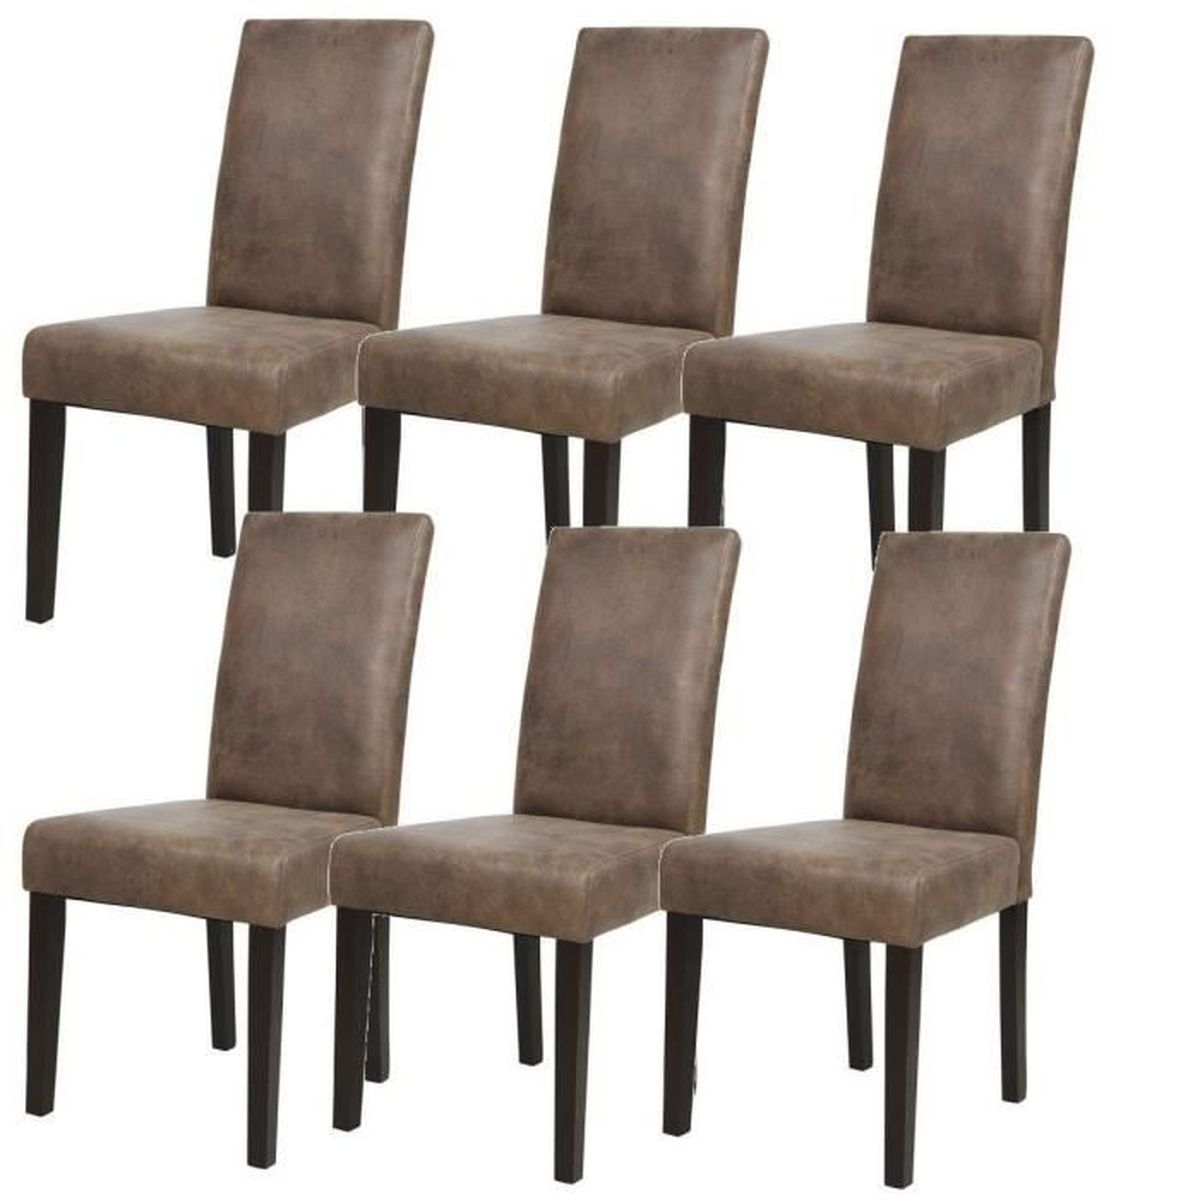 chaises marron achat vente chaises marron pas cher cdiscount. Black Bedroom Furniture Sets. Home Design Ideas